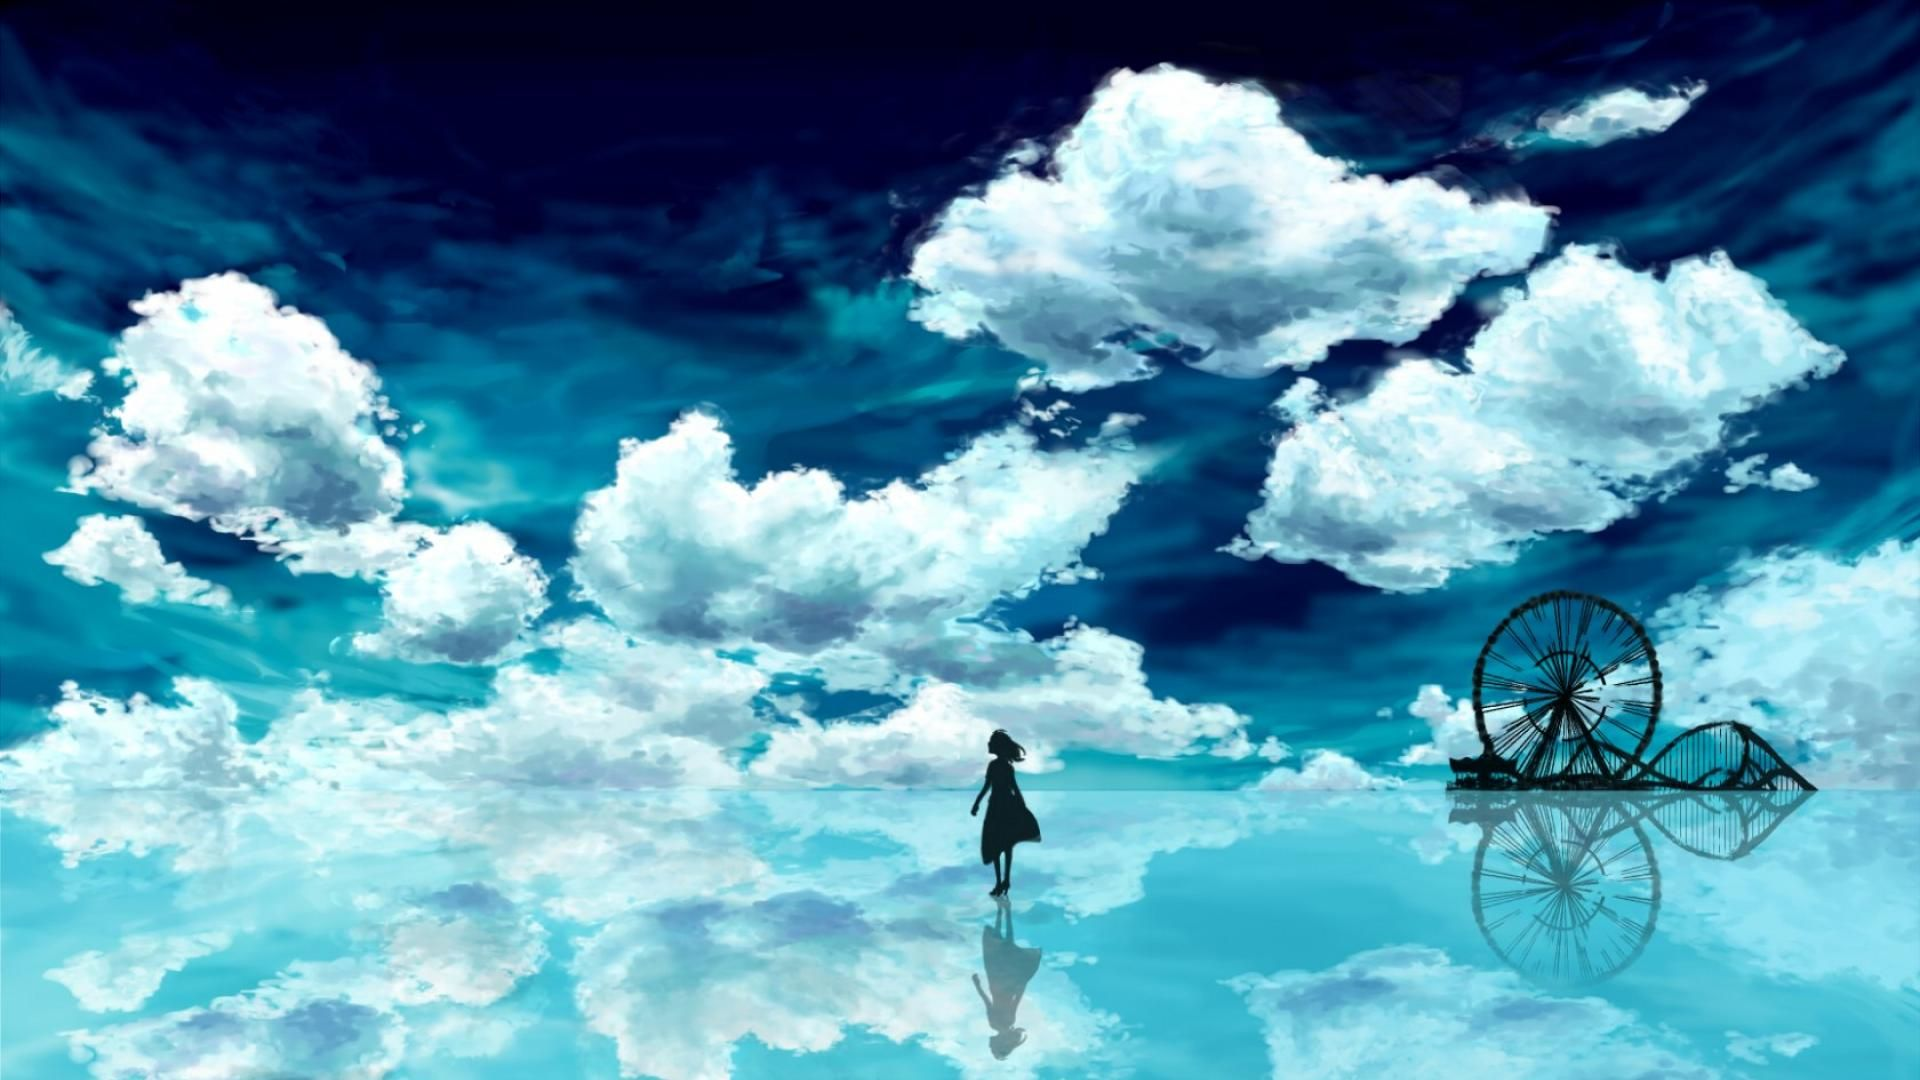 More Discrete Anime Wallpapers Anime Scenery Anime Scenery Wallpaper Scenery Wallpaper